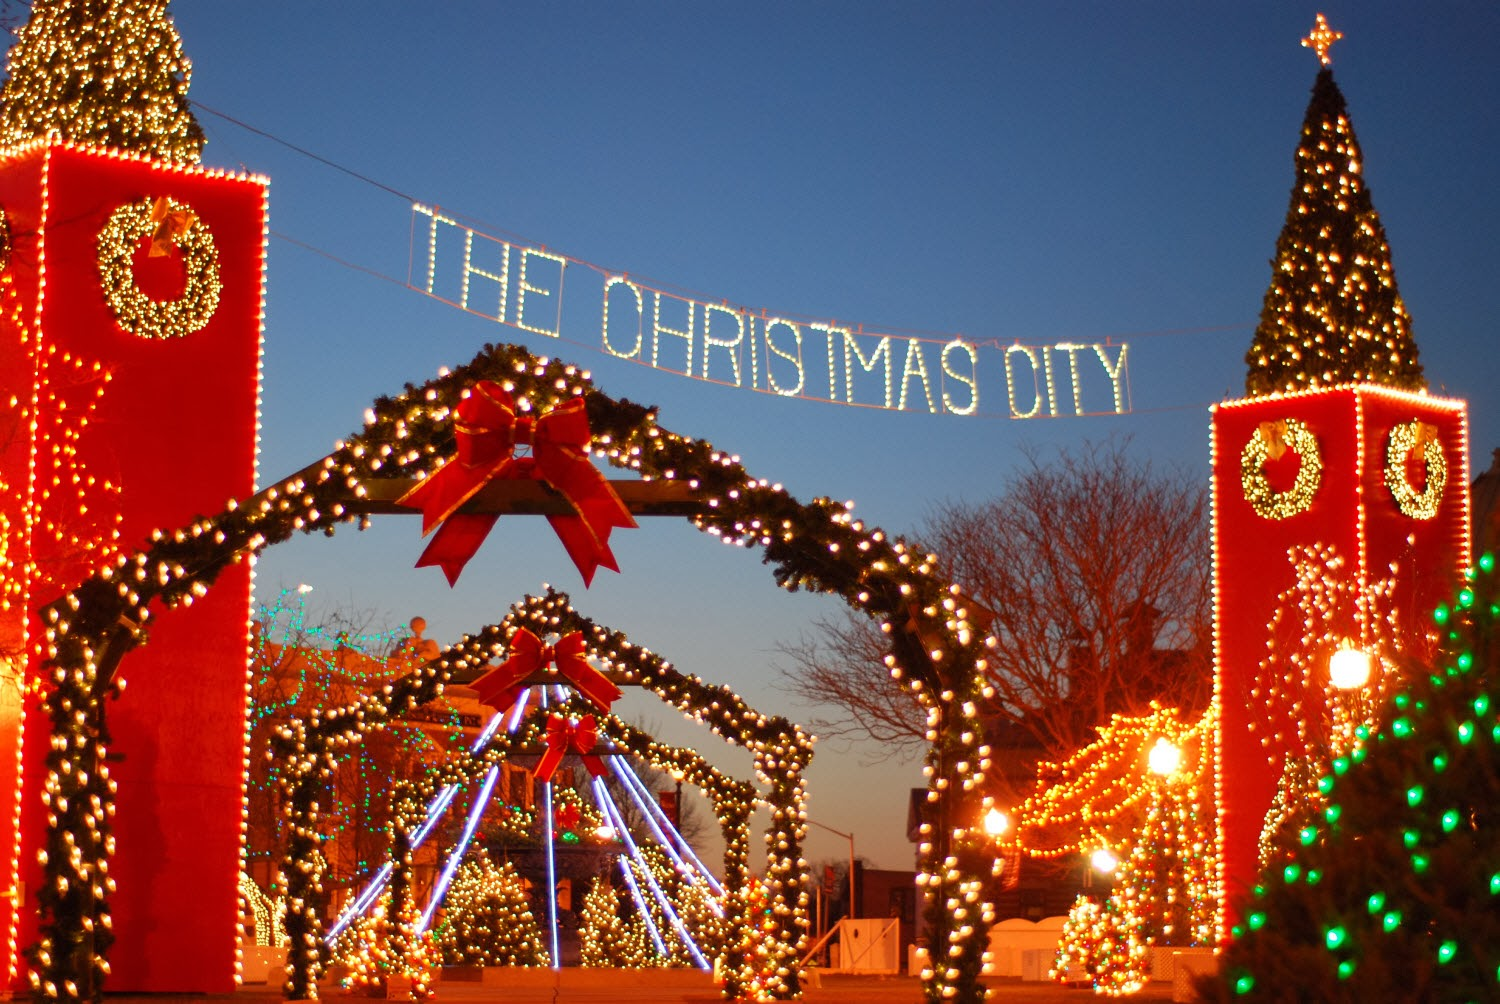 Christmas City Pictures